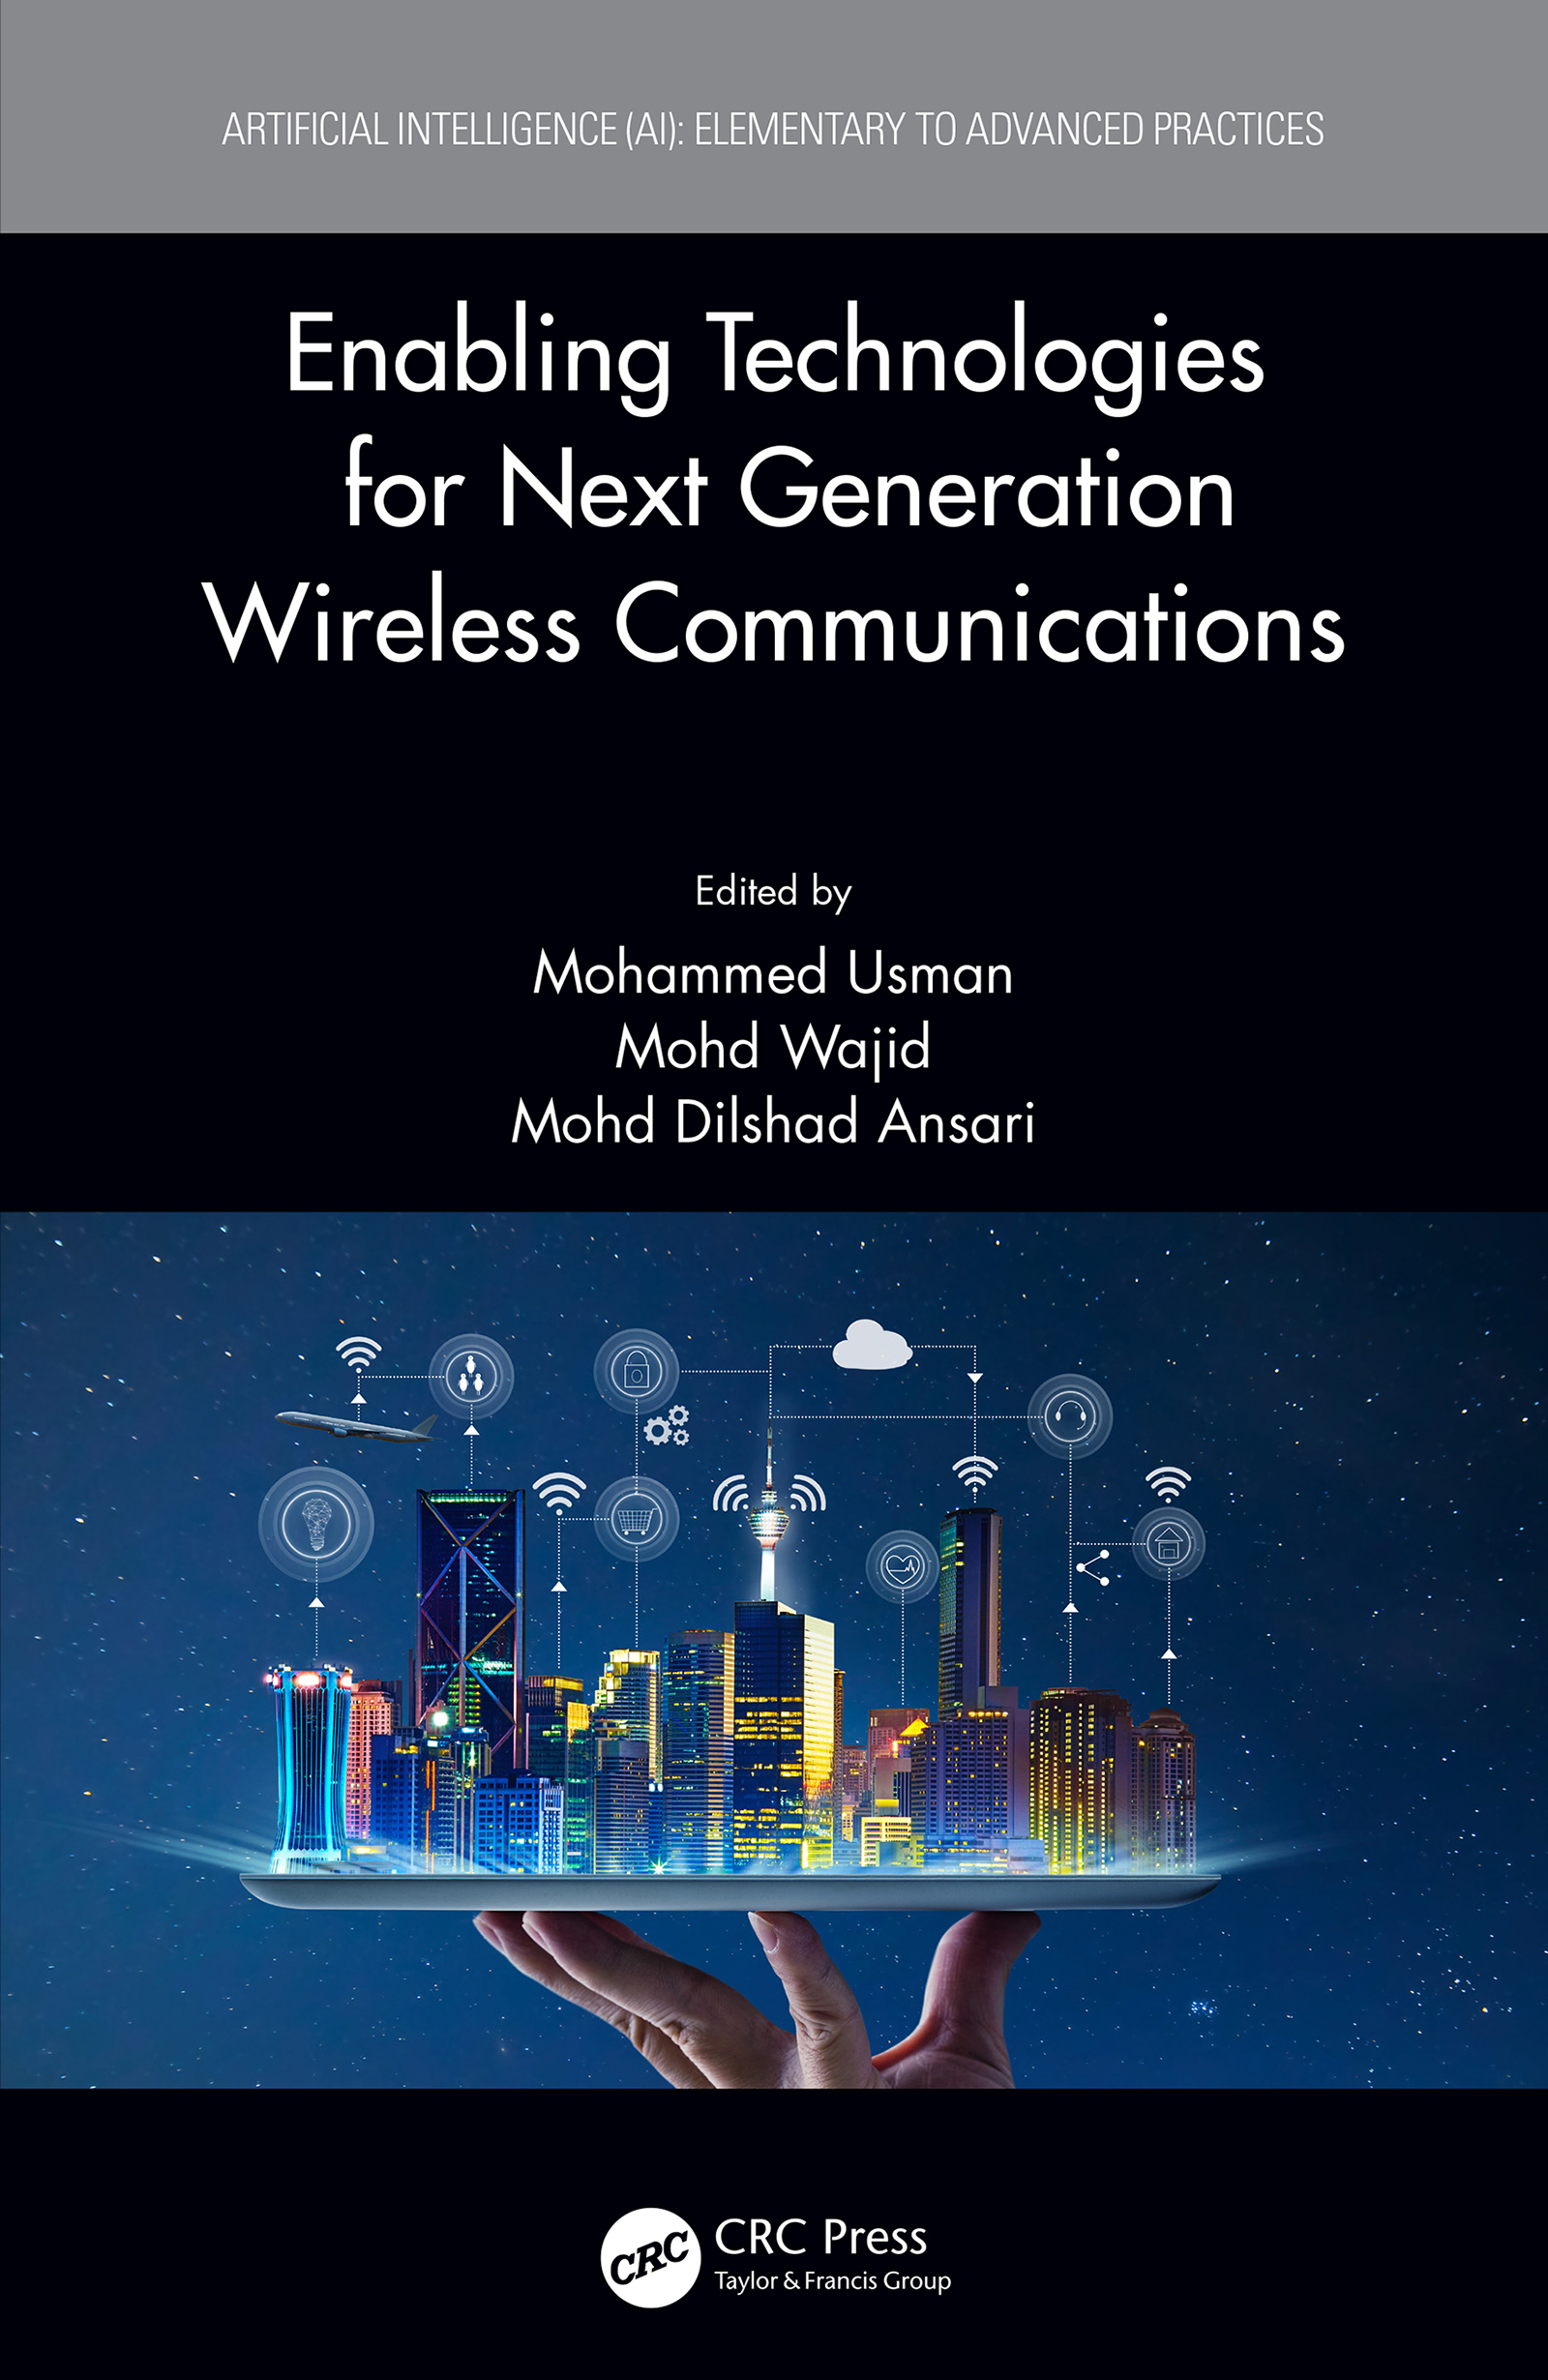 Enabling Technologies for Next Generation Wireless Communications